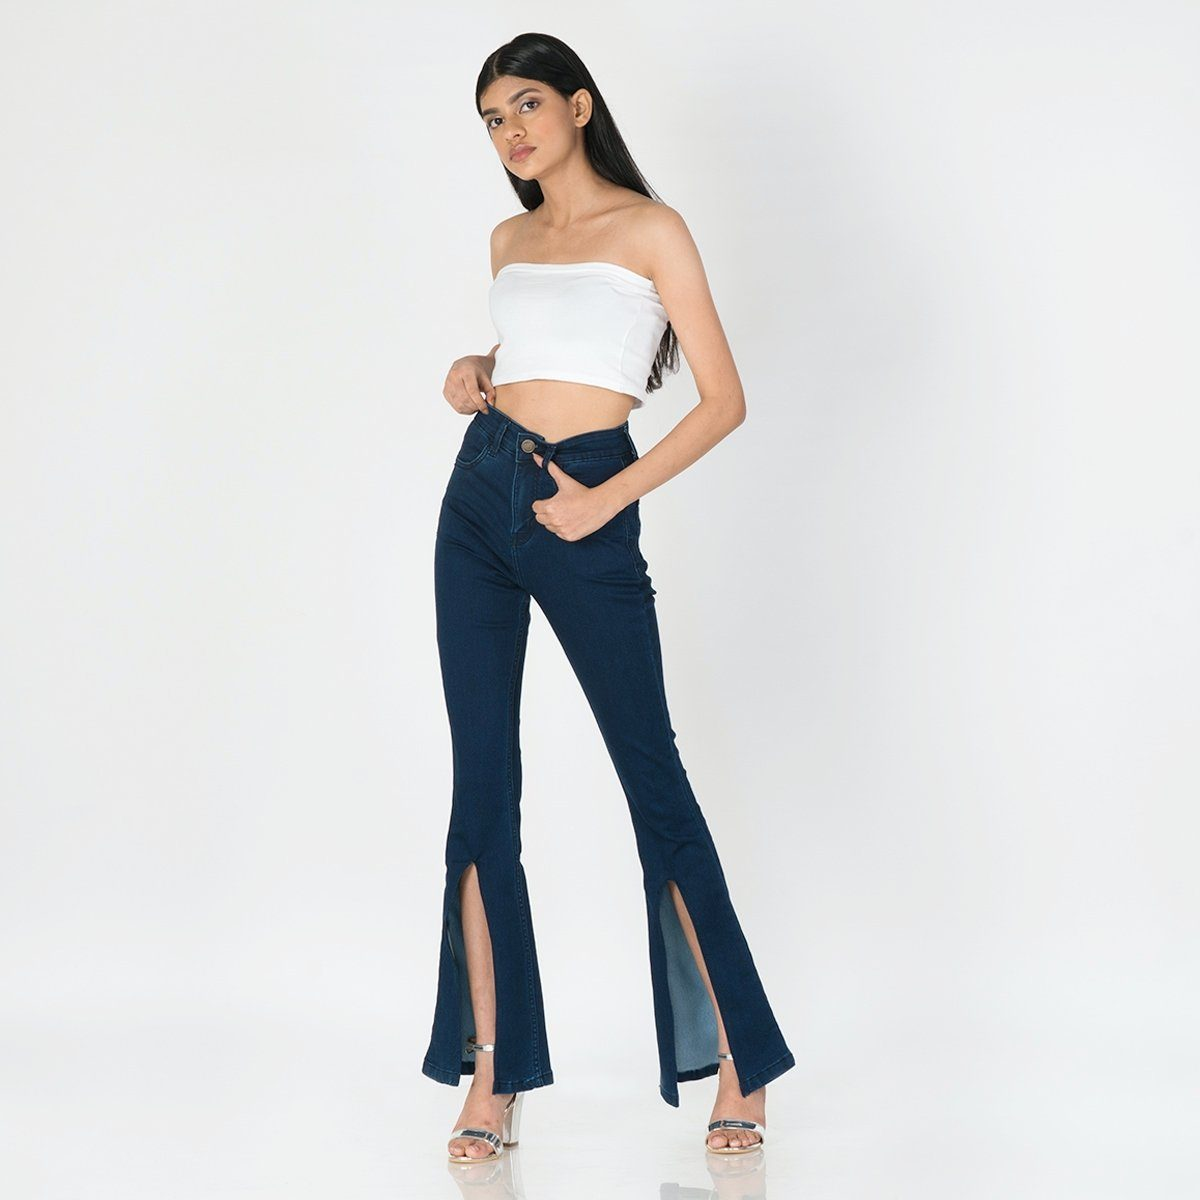 Peek-a-Boo Deep Blue Bootcut High Waist Jeans by Madish